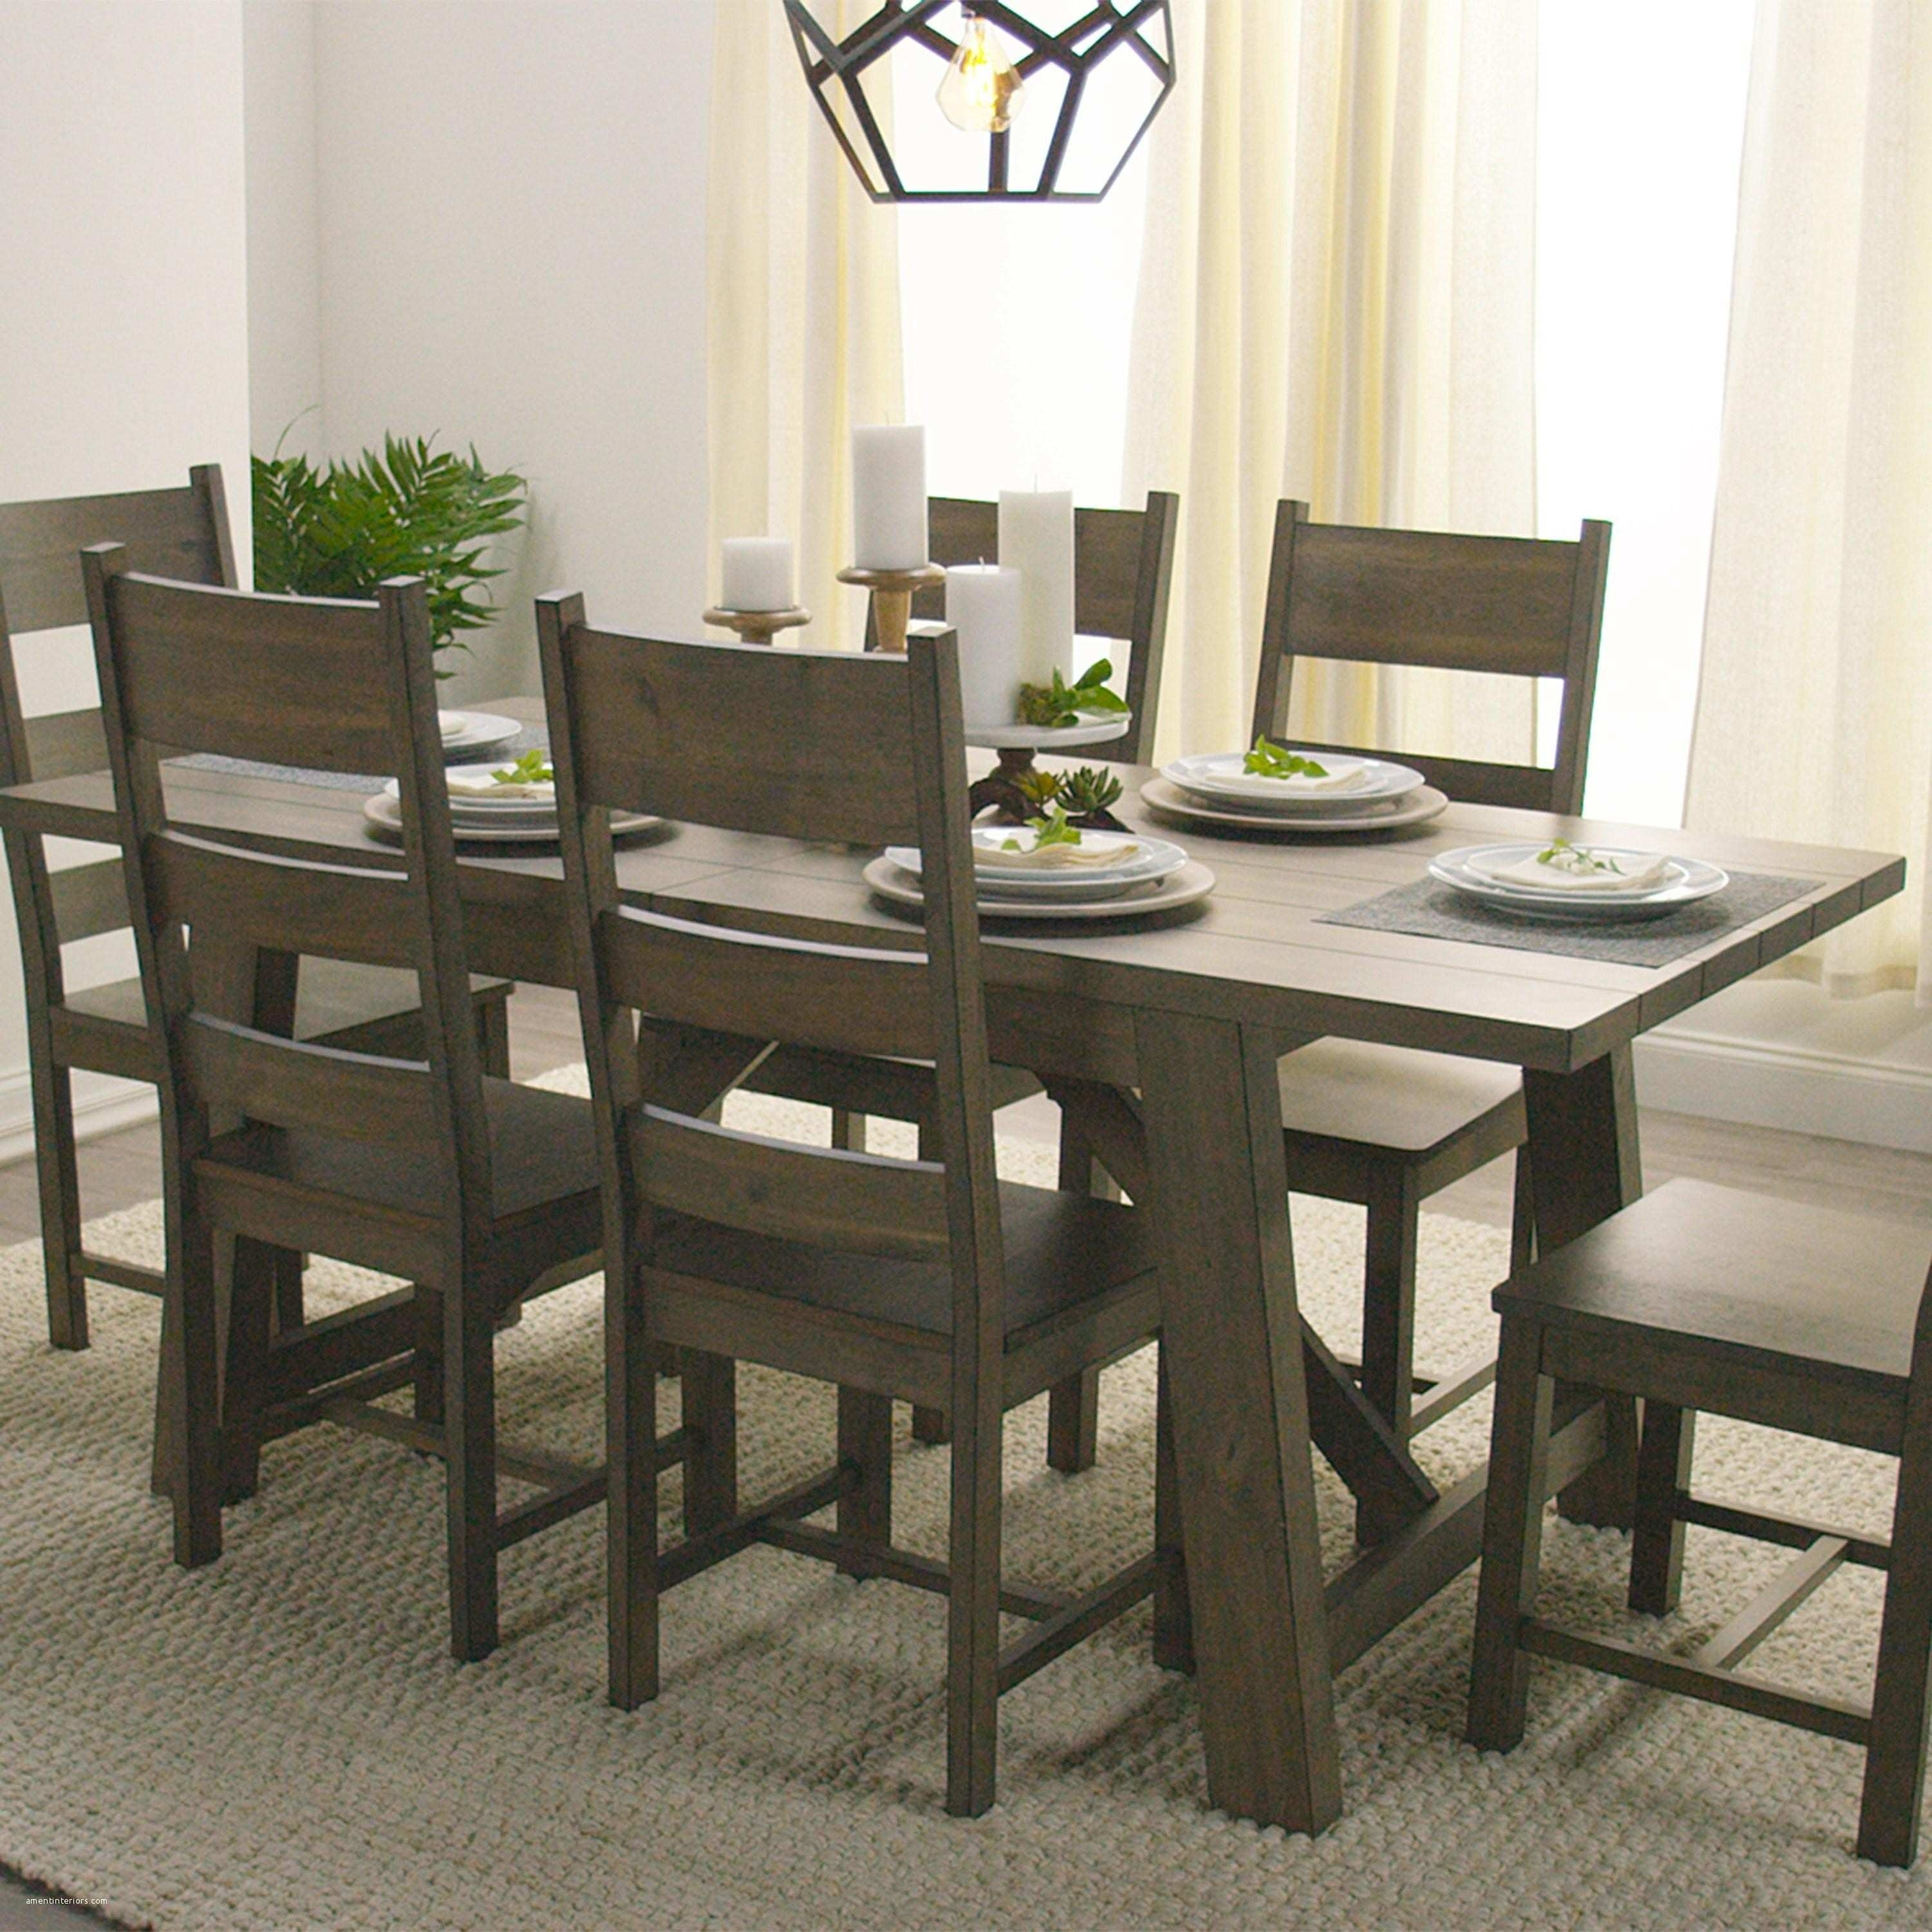 Decorative World Market Dining Room Table And World Market Dining Inside 2017 Market Dining Tables (Image 4 of 20)